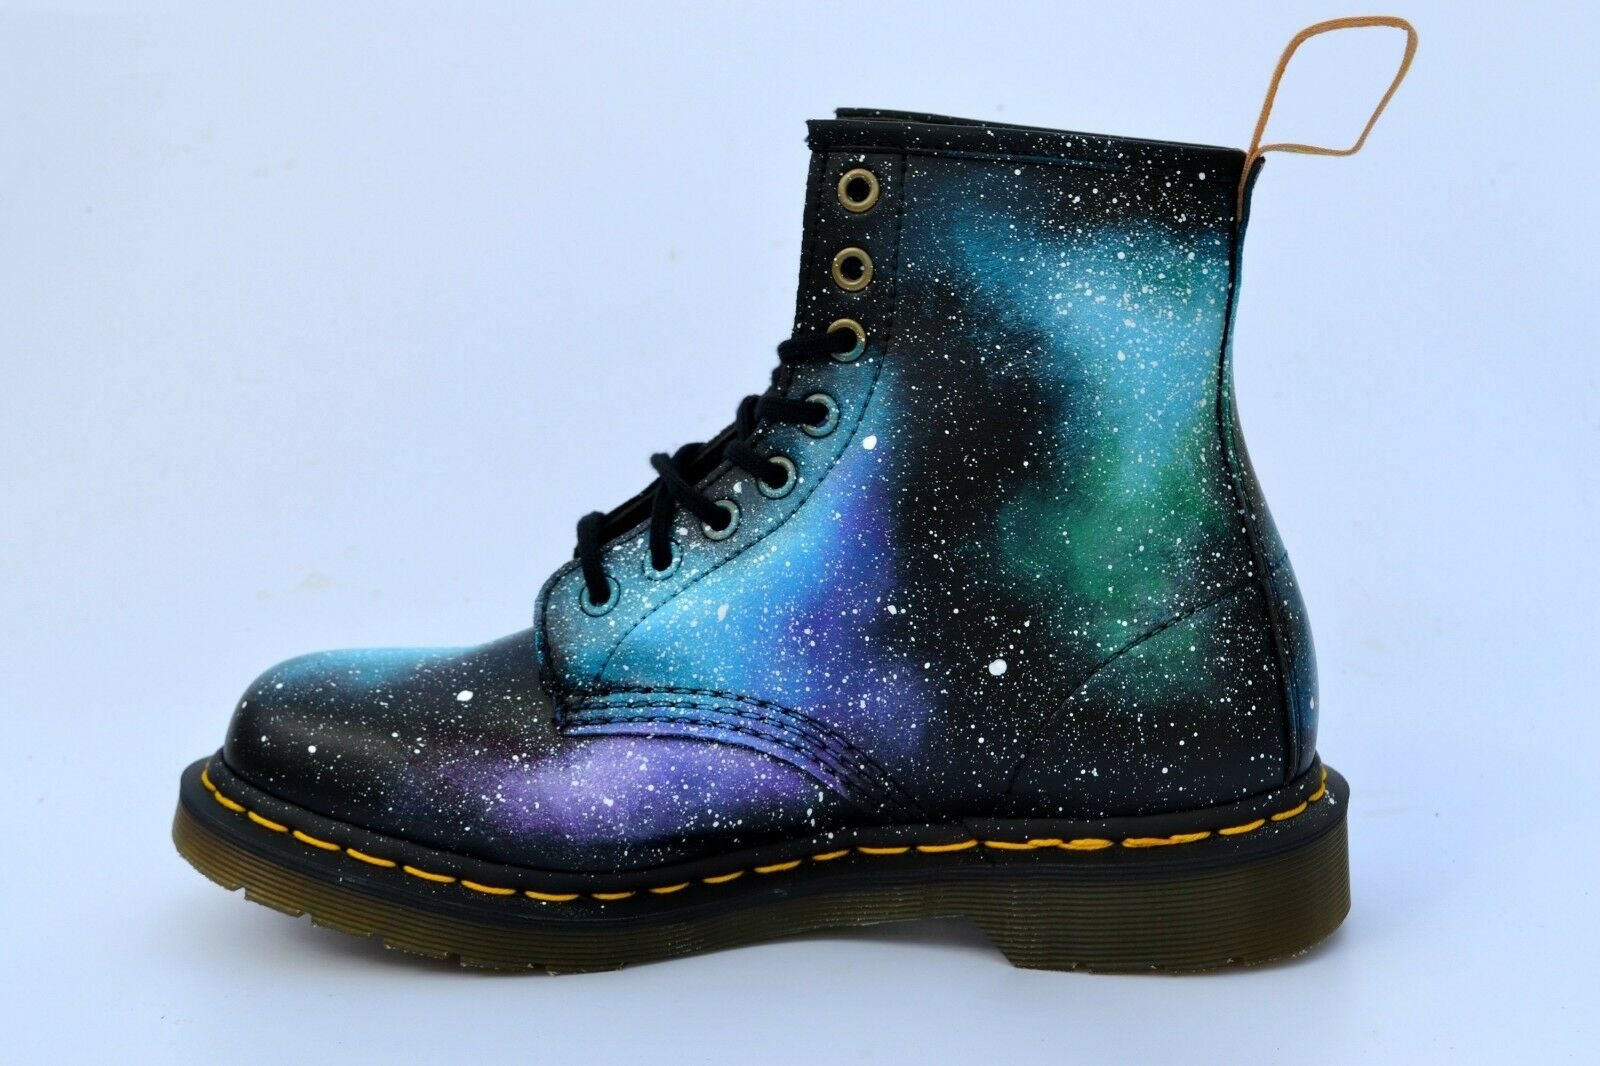 Galaxy Dr Martens Stiefel, Vegan 1460 Stiefel- Hand Painted to Order